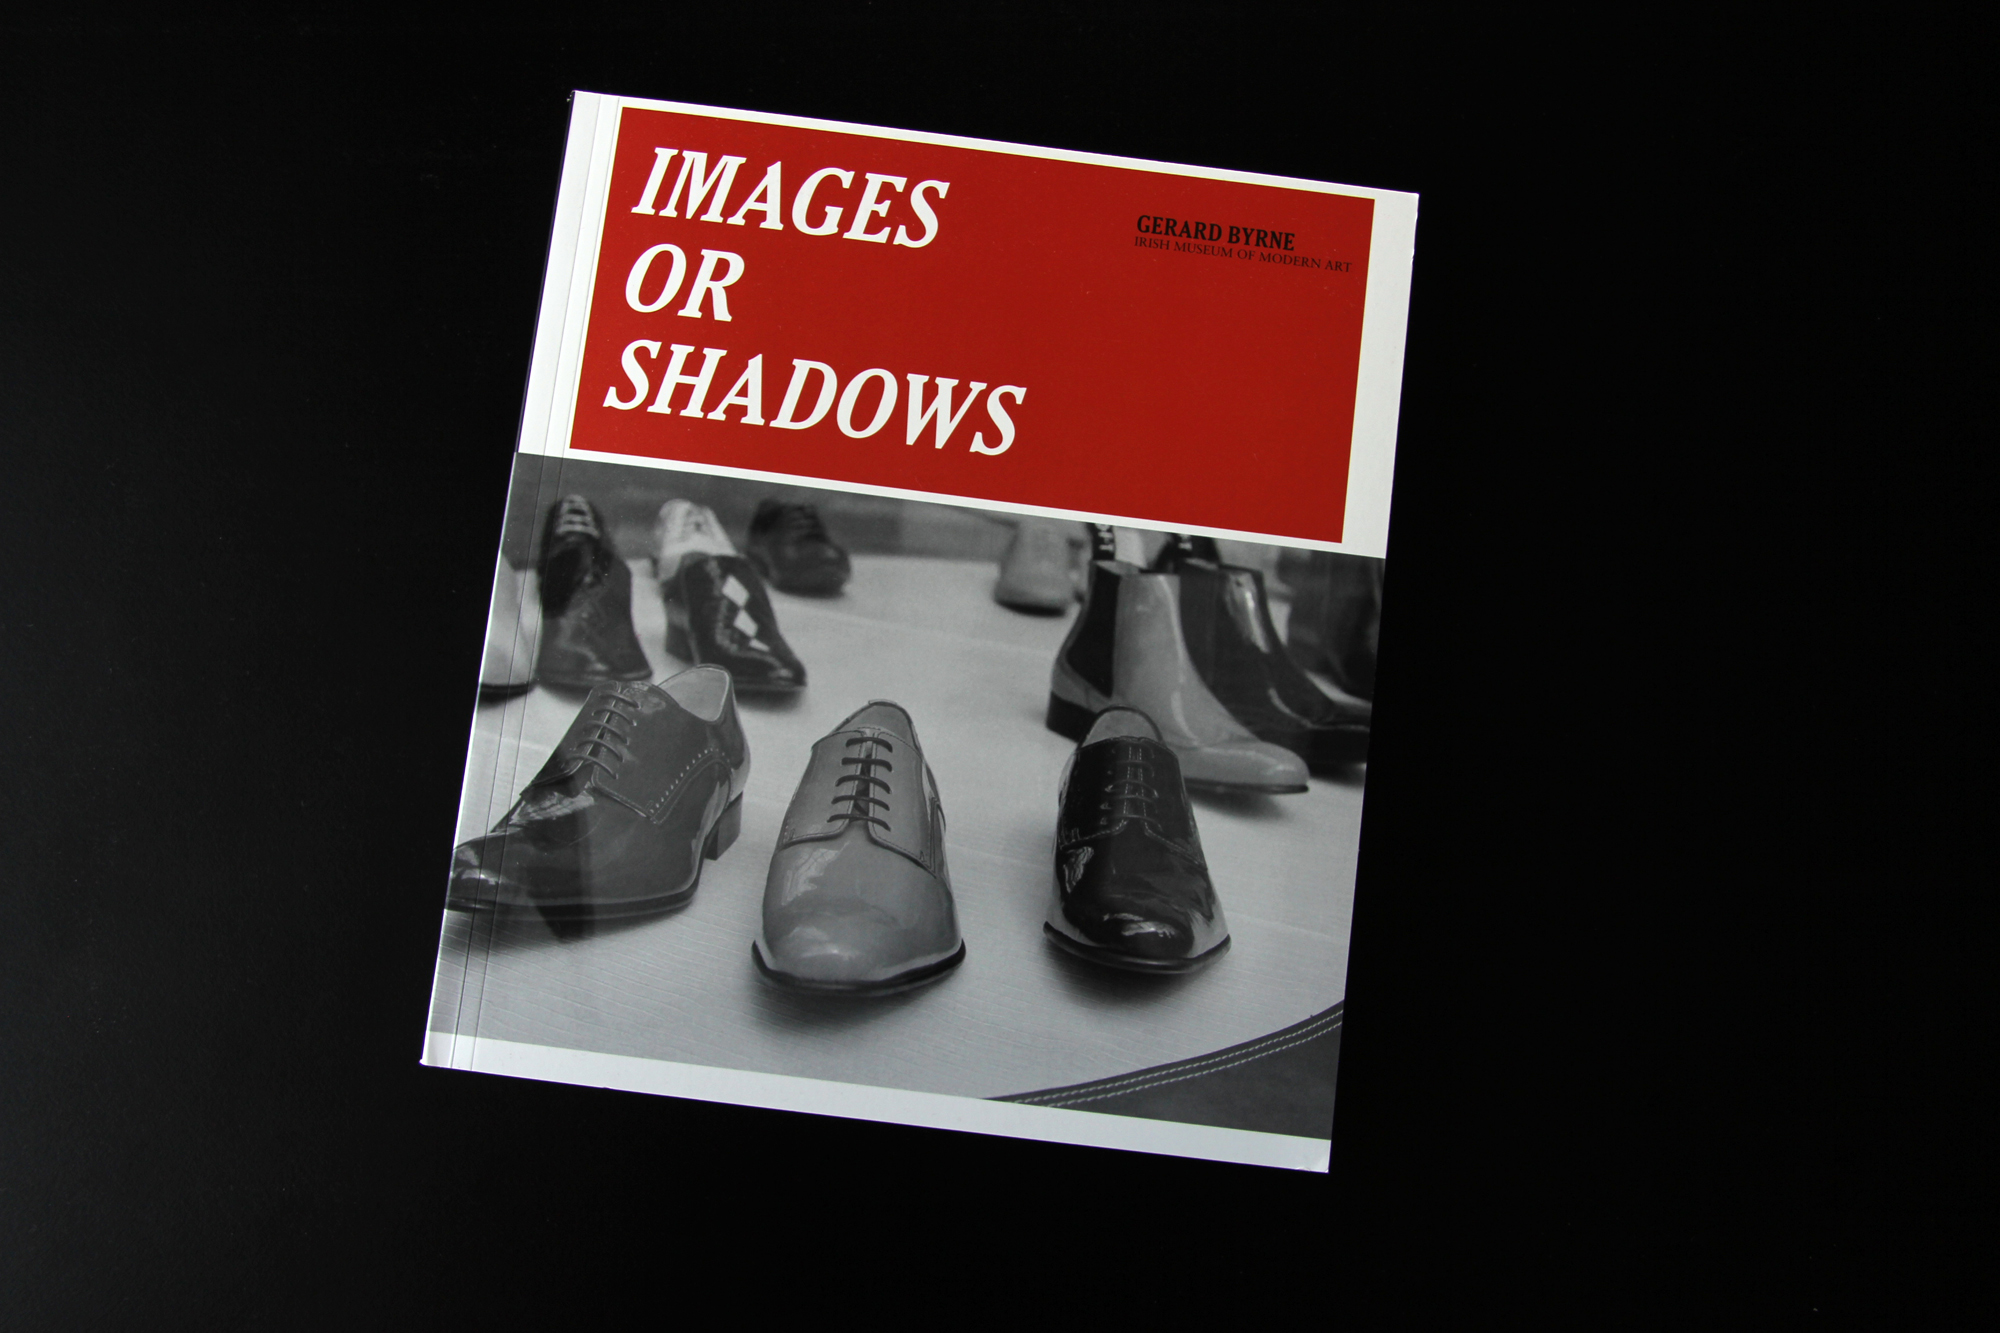 Cover image: Images or shadows (2011)